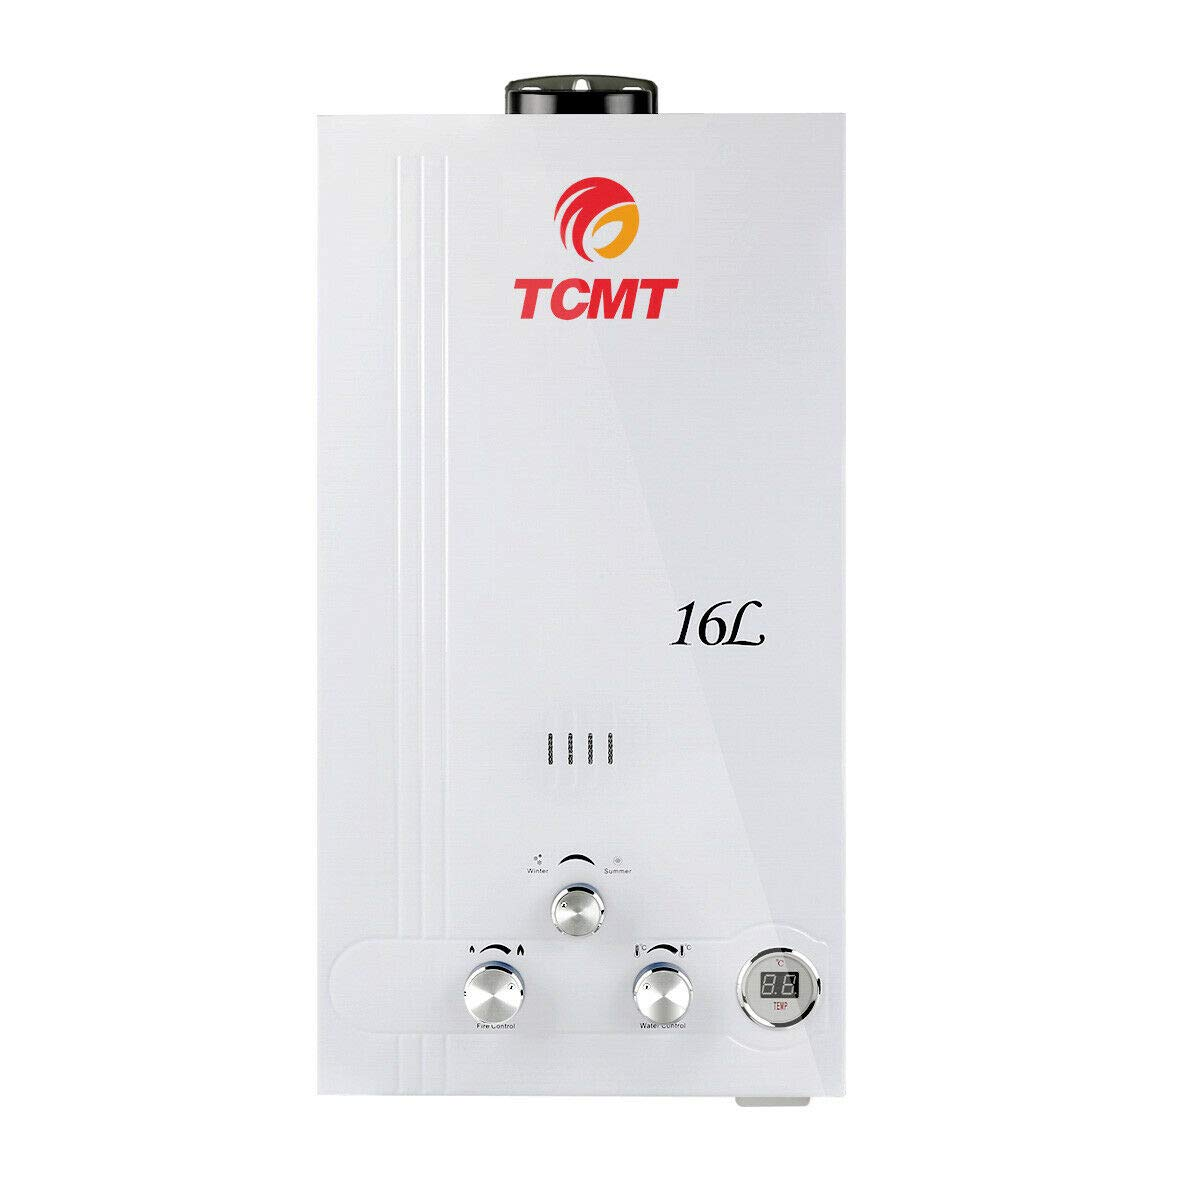 TC-Home Natural Gas 16L Digital Display 4.2 GPM 32 KW Instant stainless steel Hot Water Heater